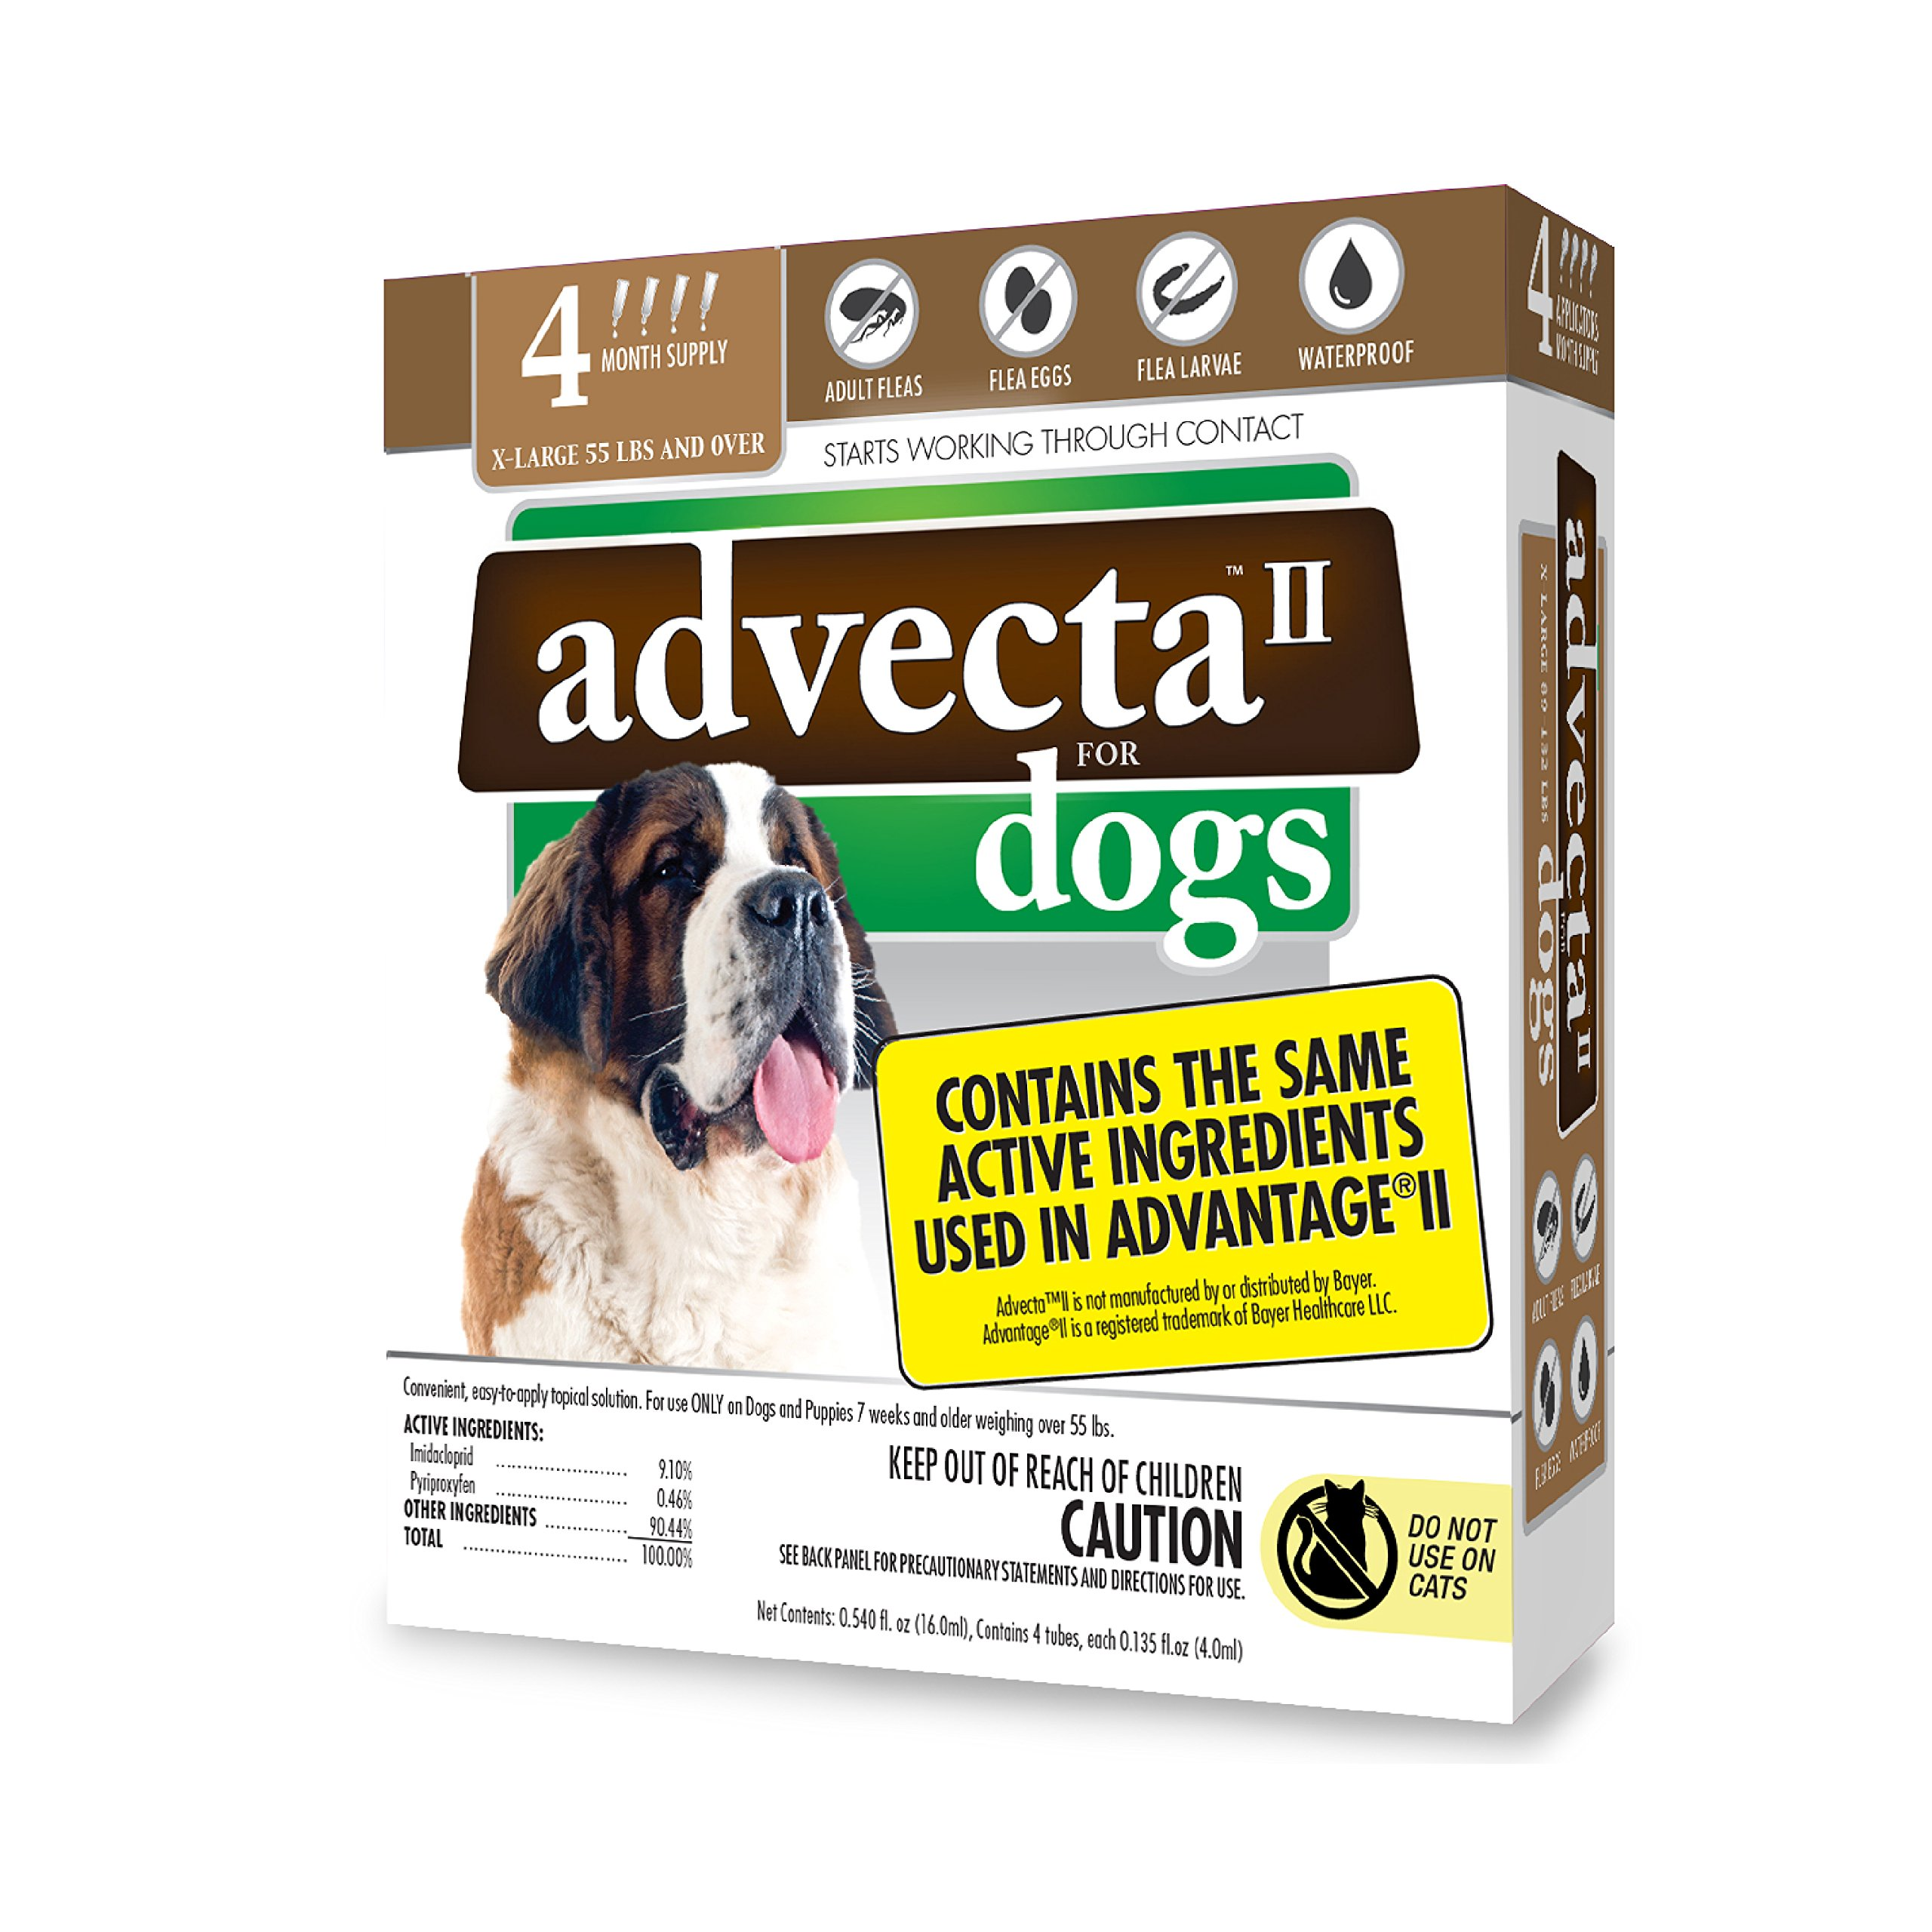 Advecta II Flea Treatment - Flea and Lice Prevention for Dogs, 4 Month Supply by Advecta